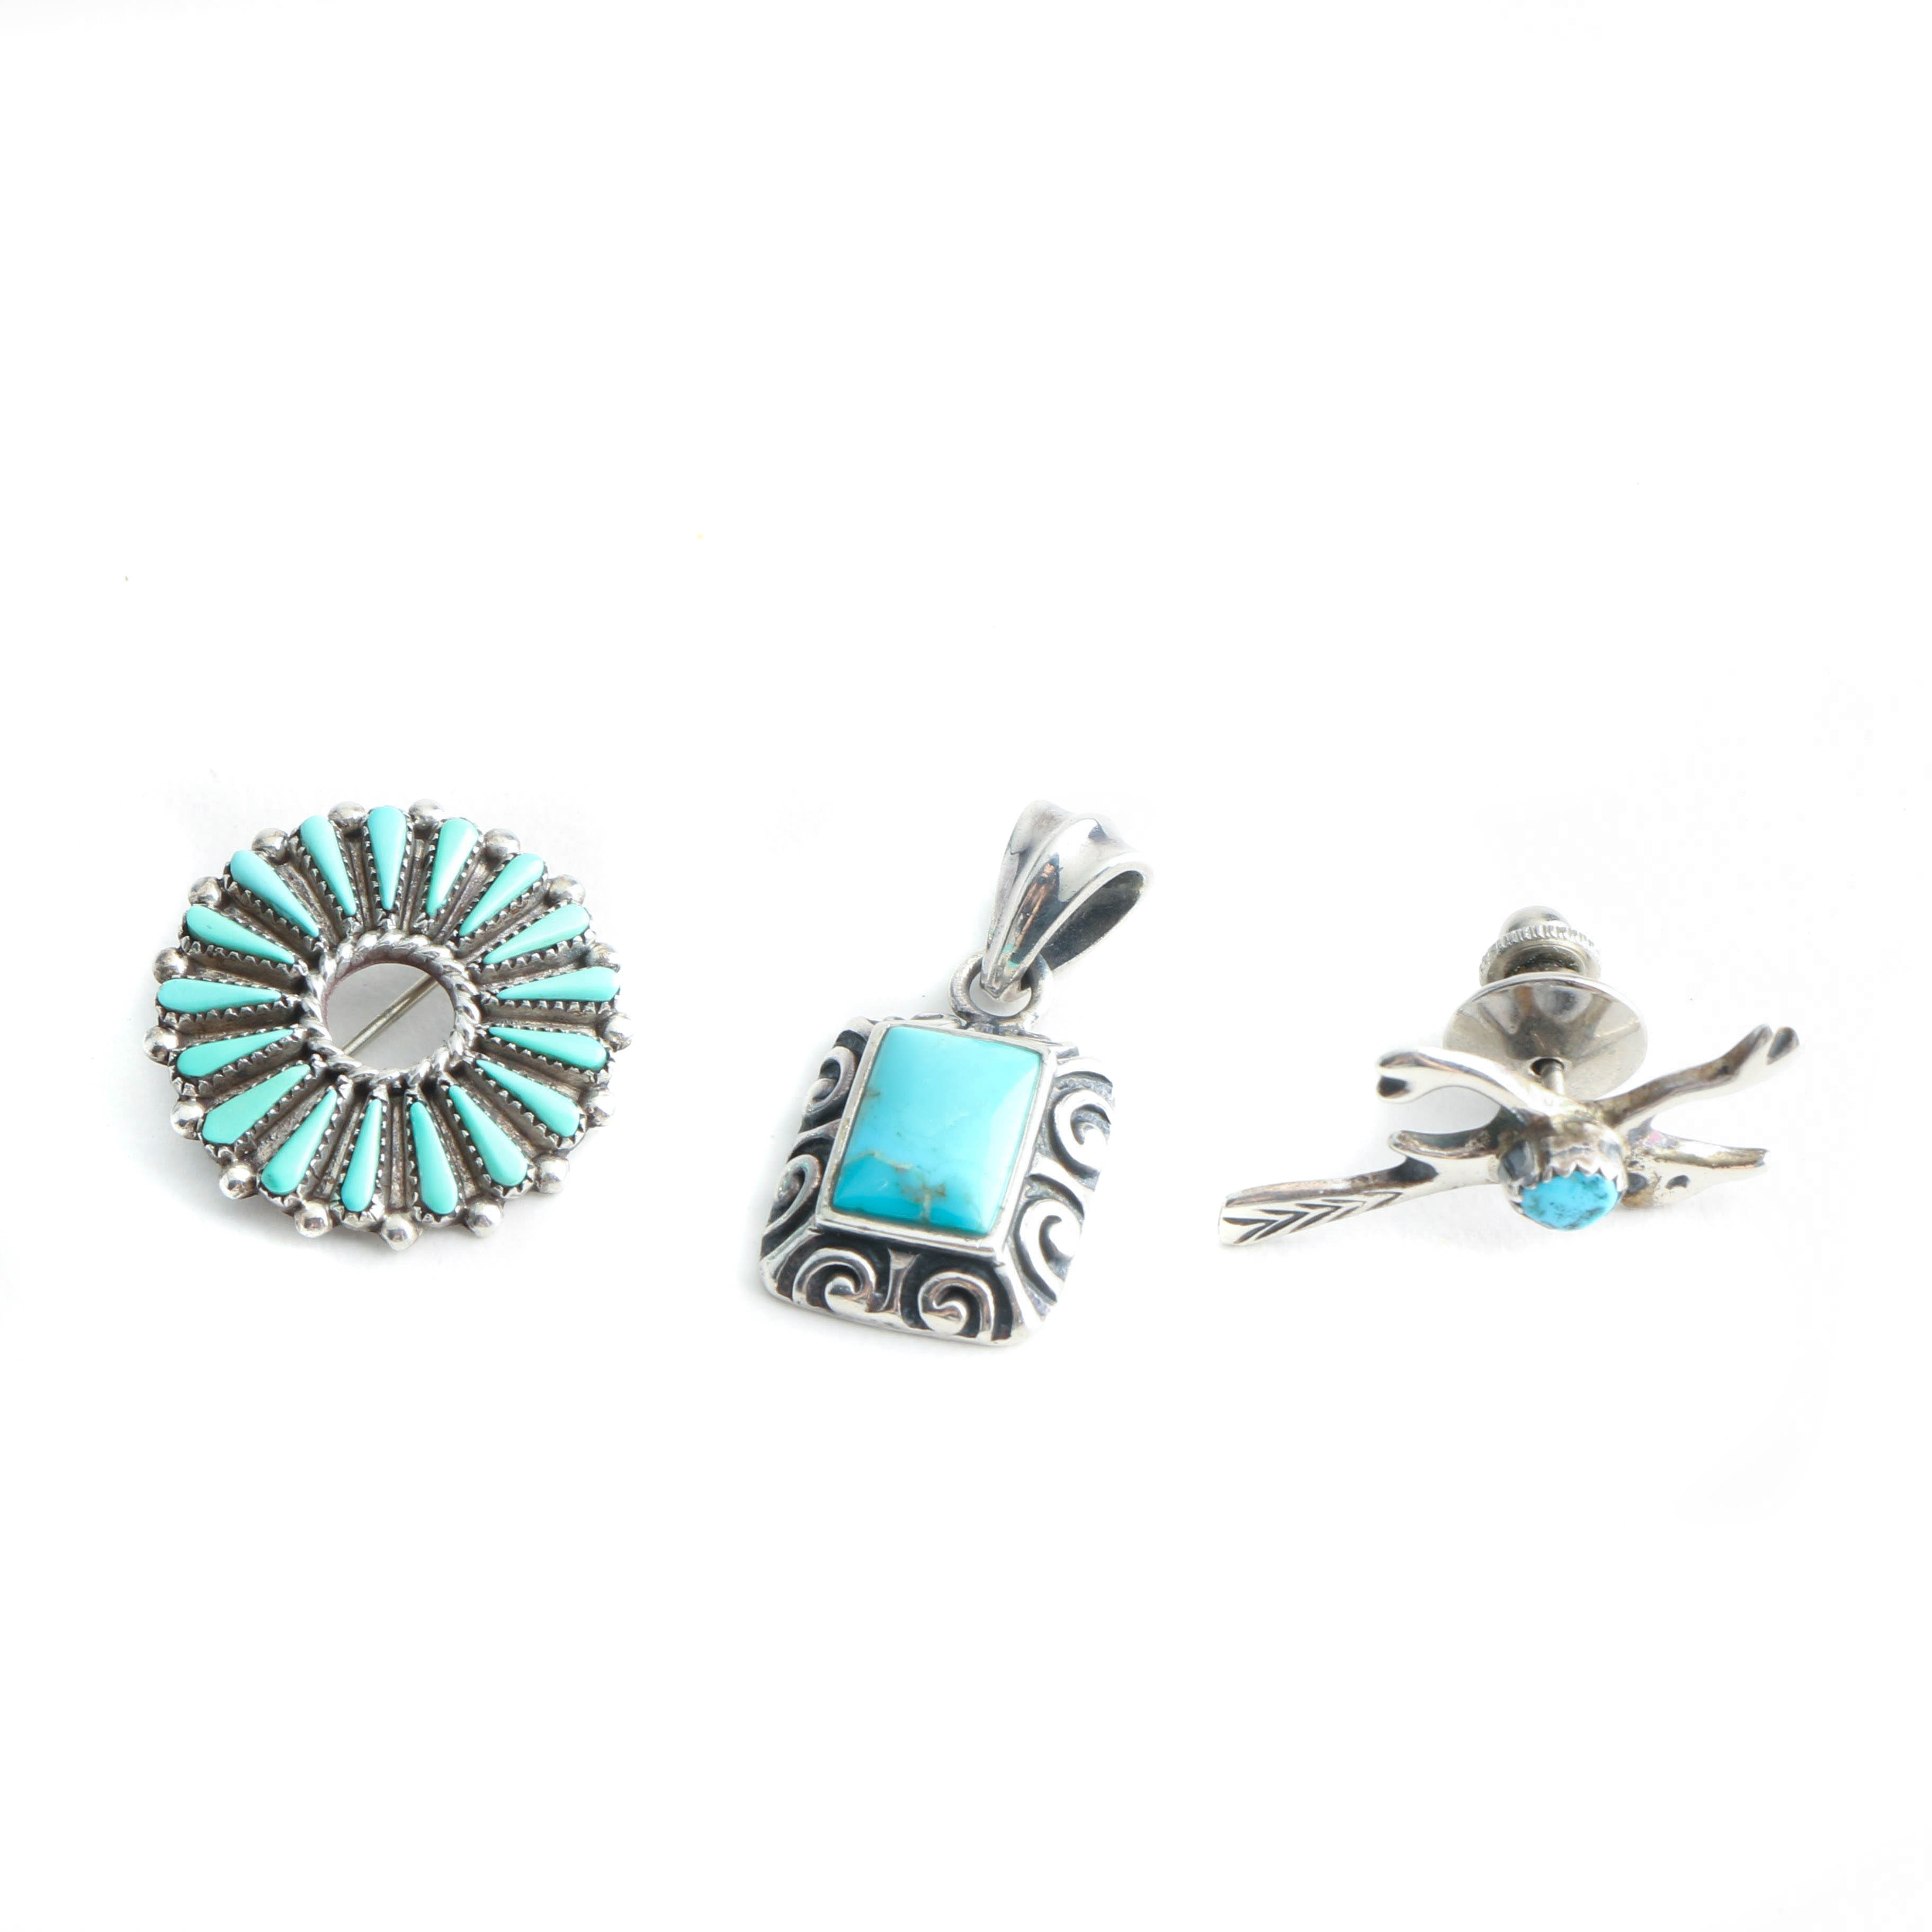 Sterling Silver Turquoise Jewelry Featuring Randy Hooee Zuni Needlepoint